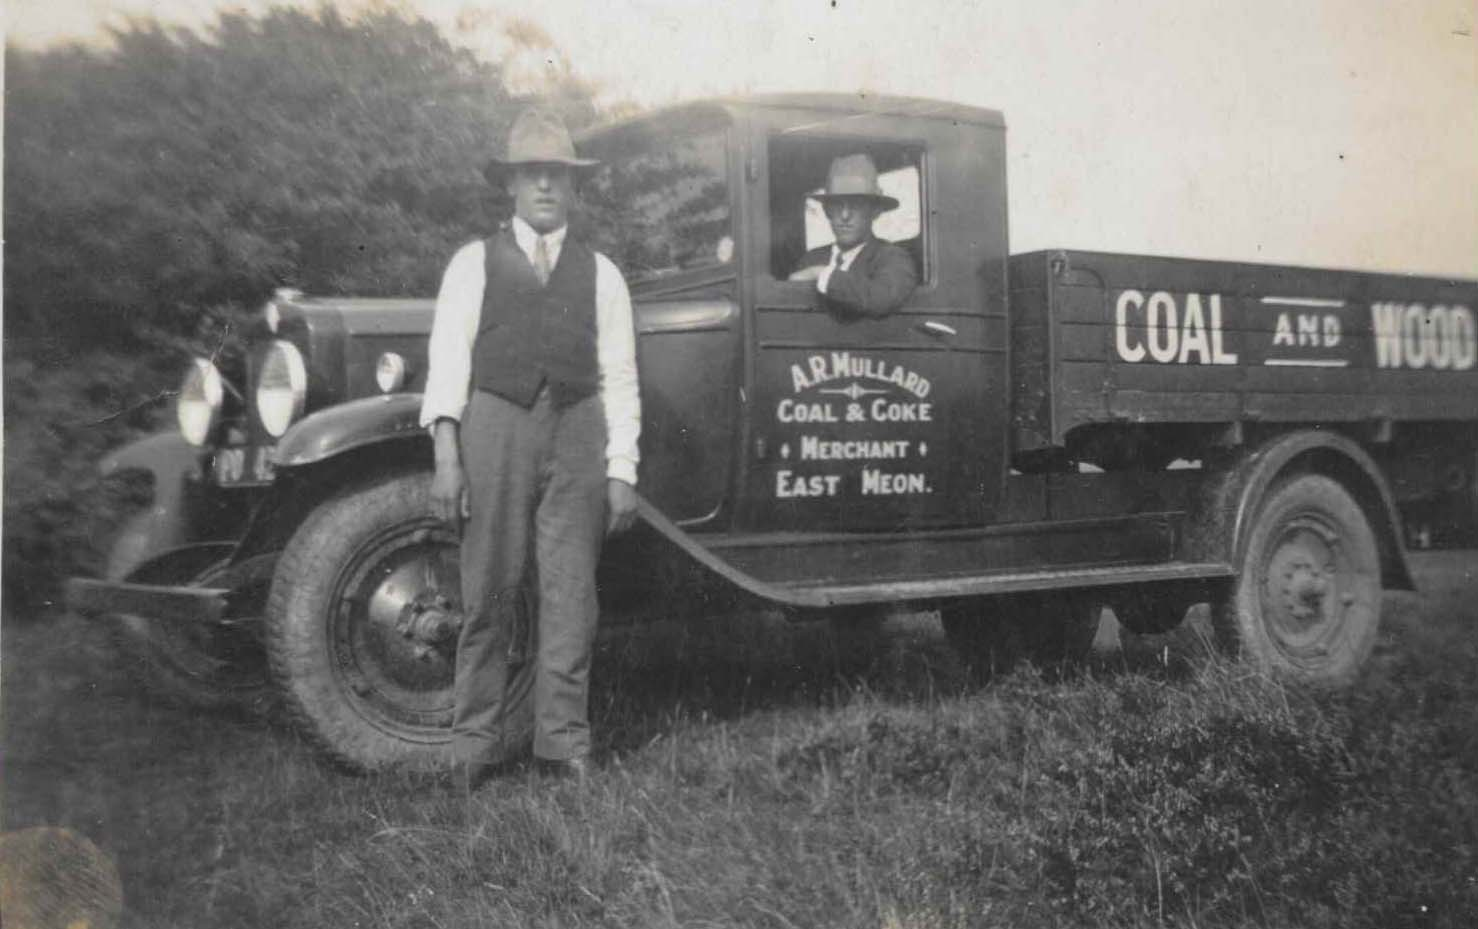 A.R.Mullard Coal and Coke delivery. The two sons and the lorry.